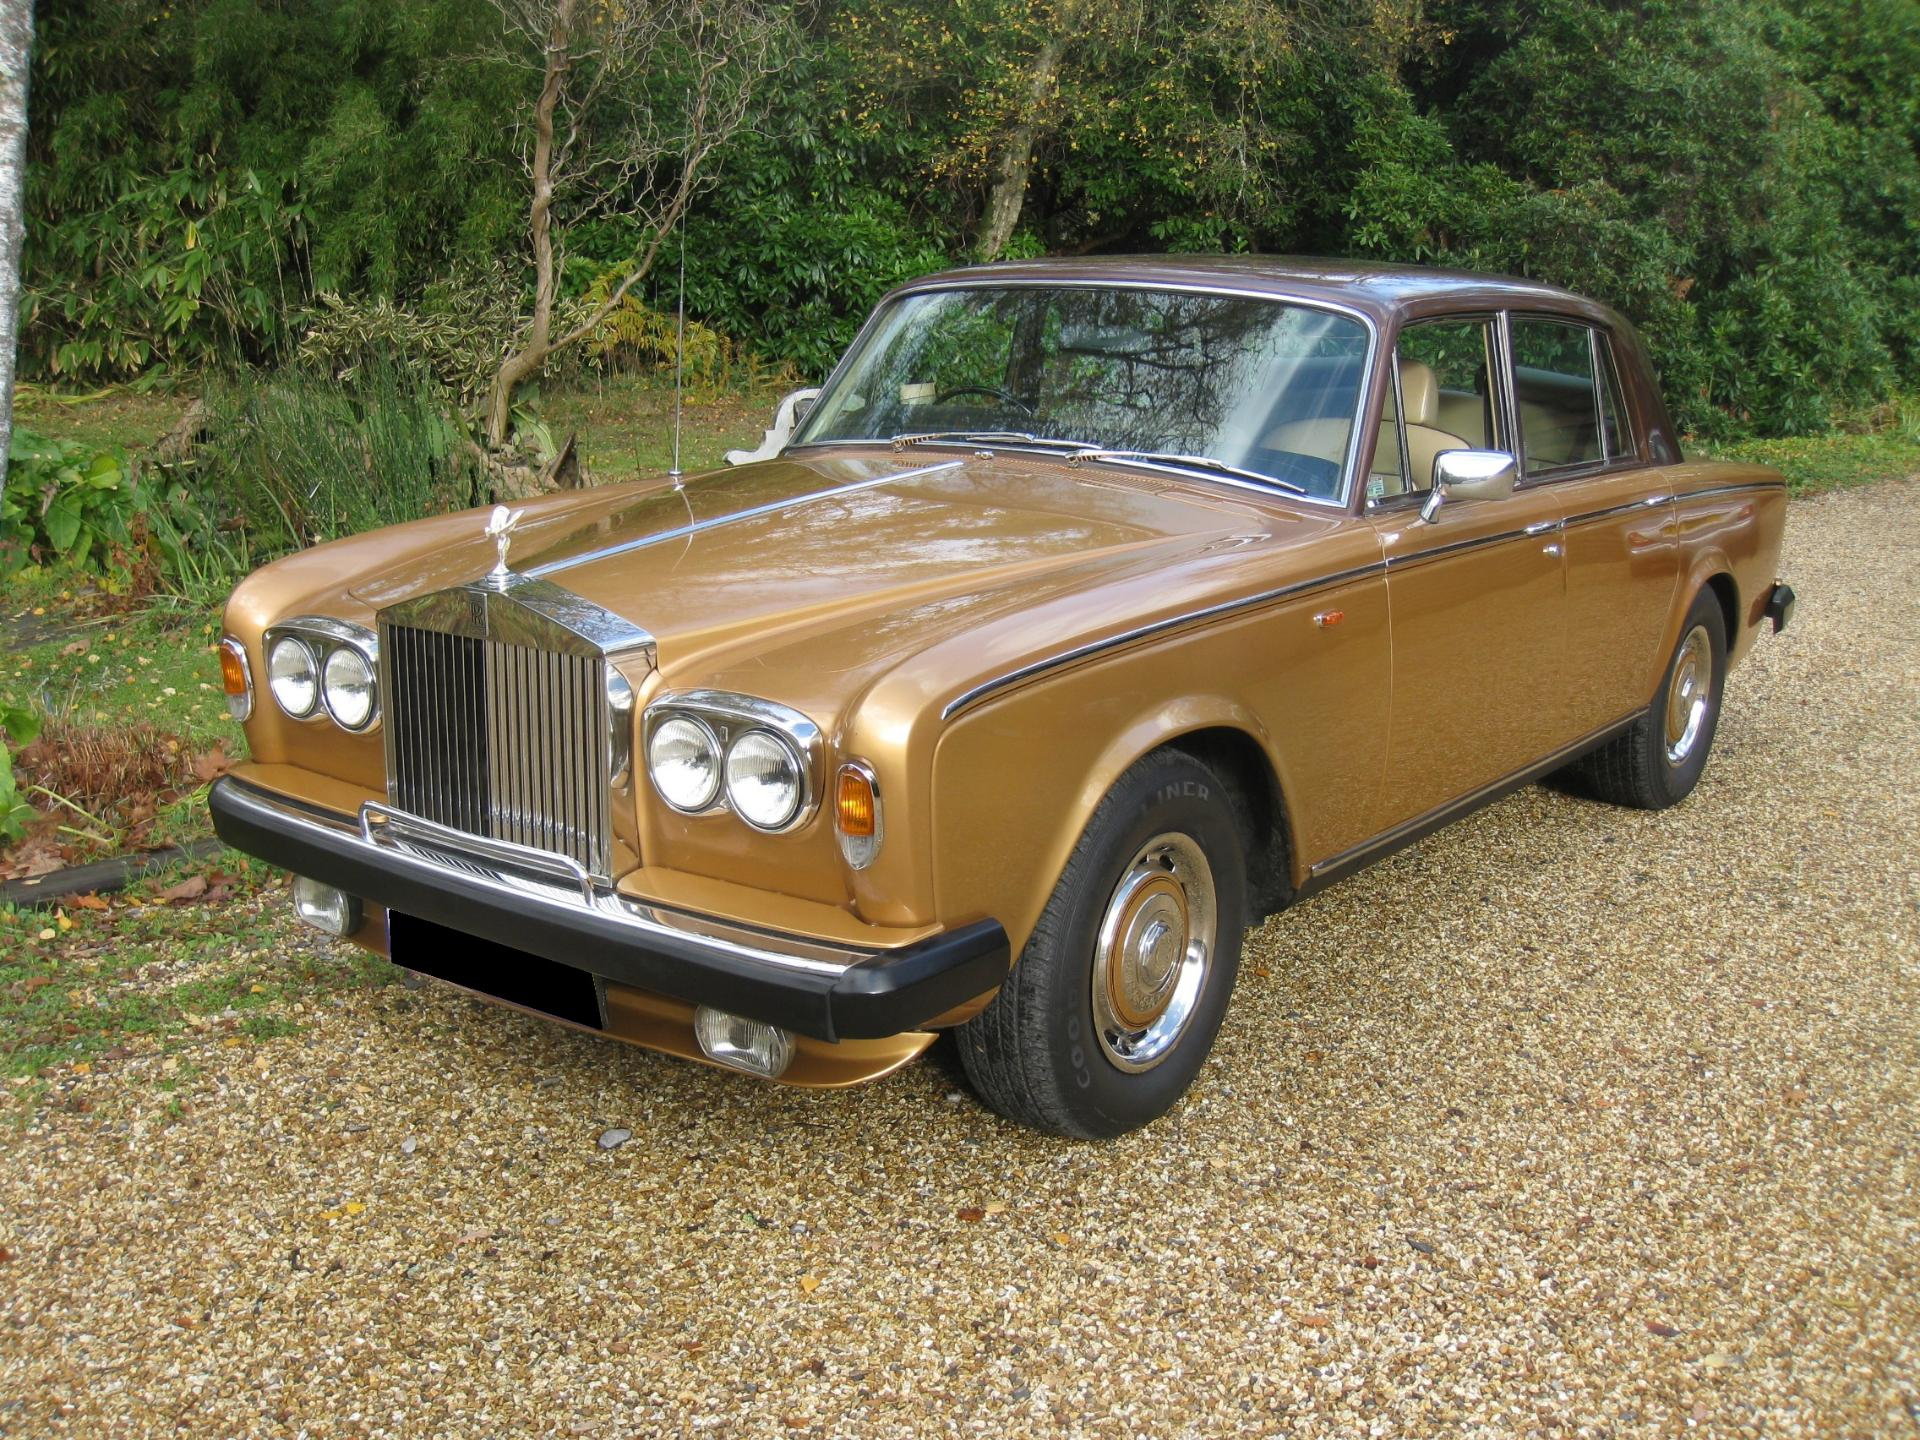 1978 Rolls-Royce Silver Shadow Automatic For Sale In Landford, Wiltshire